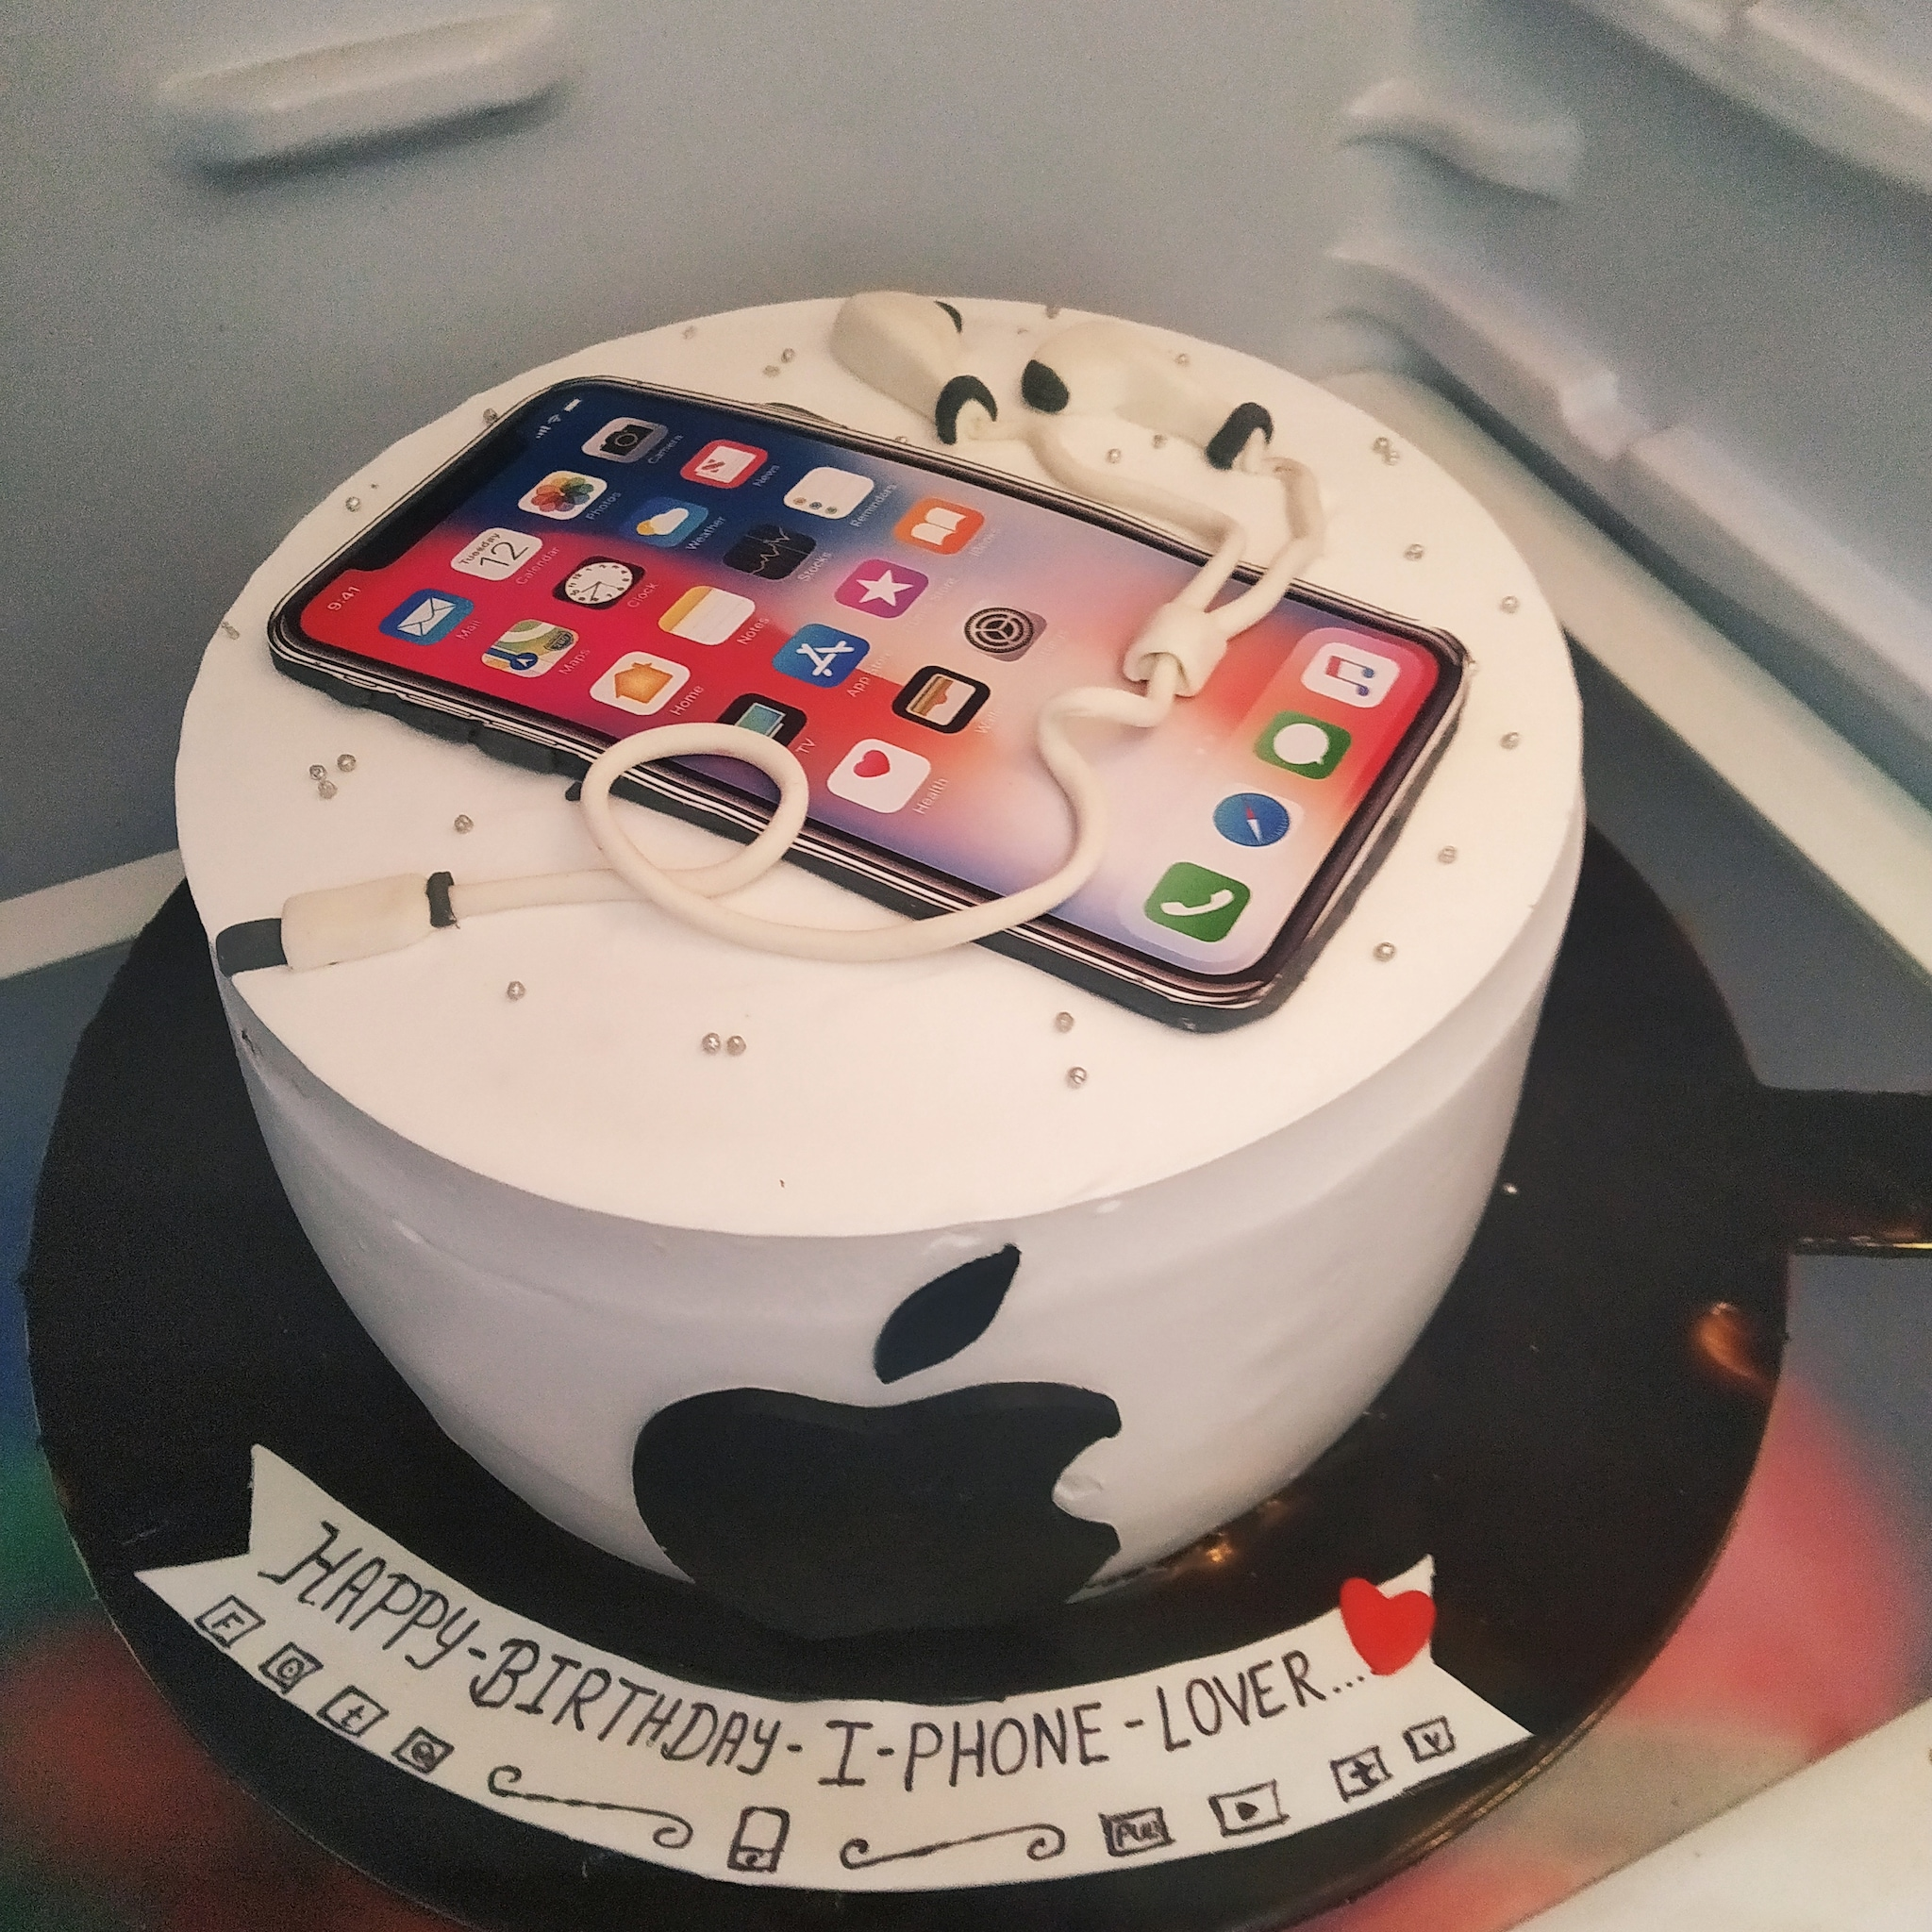 IPhone Lover Cake (1 Kg,Chocolate)